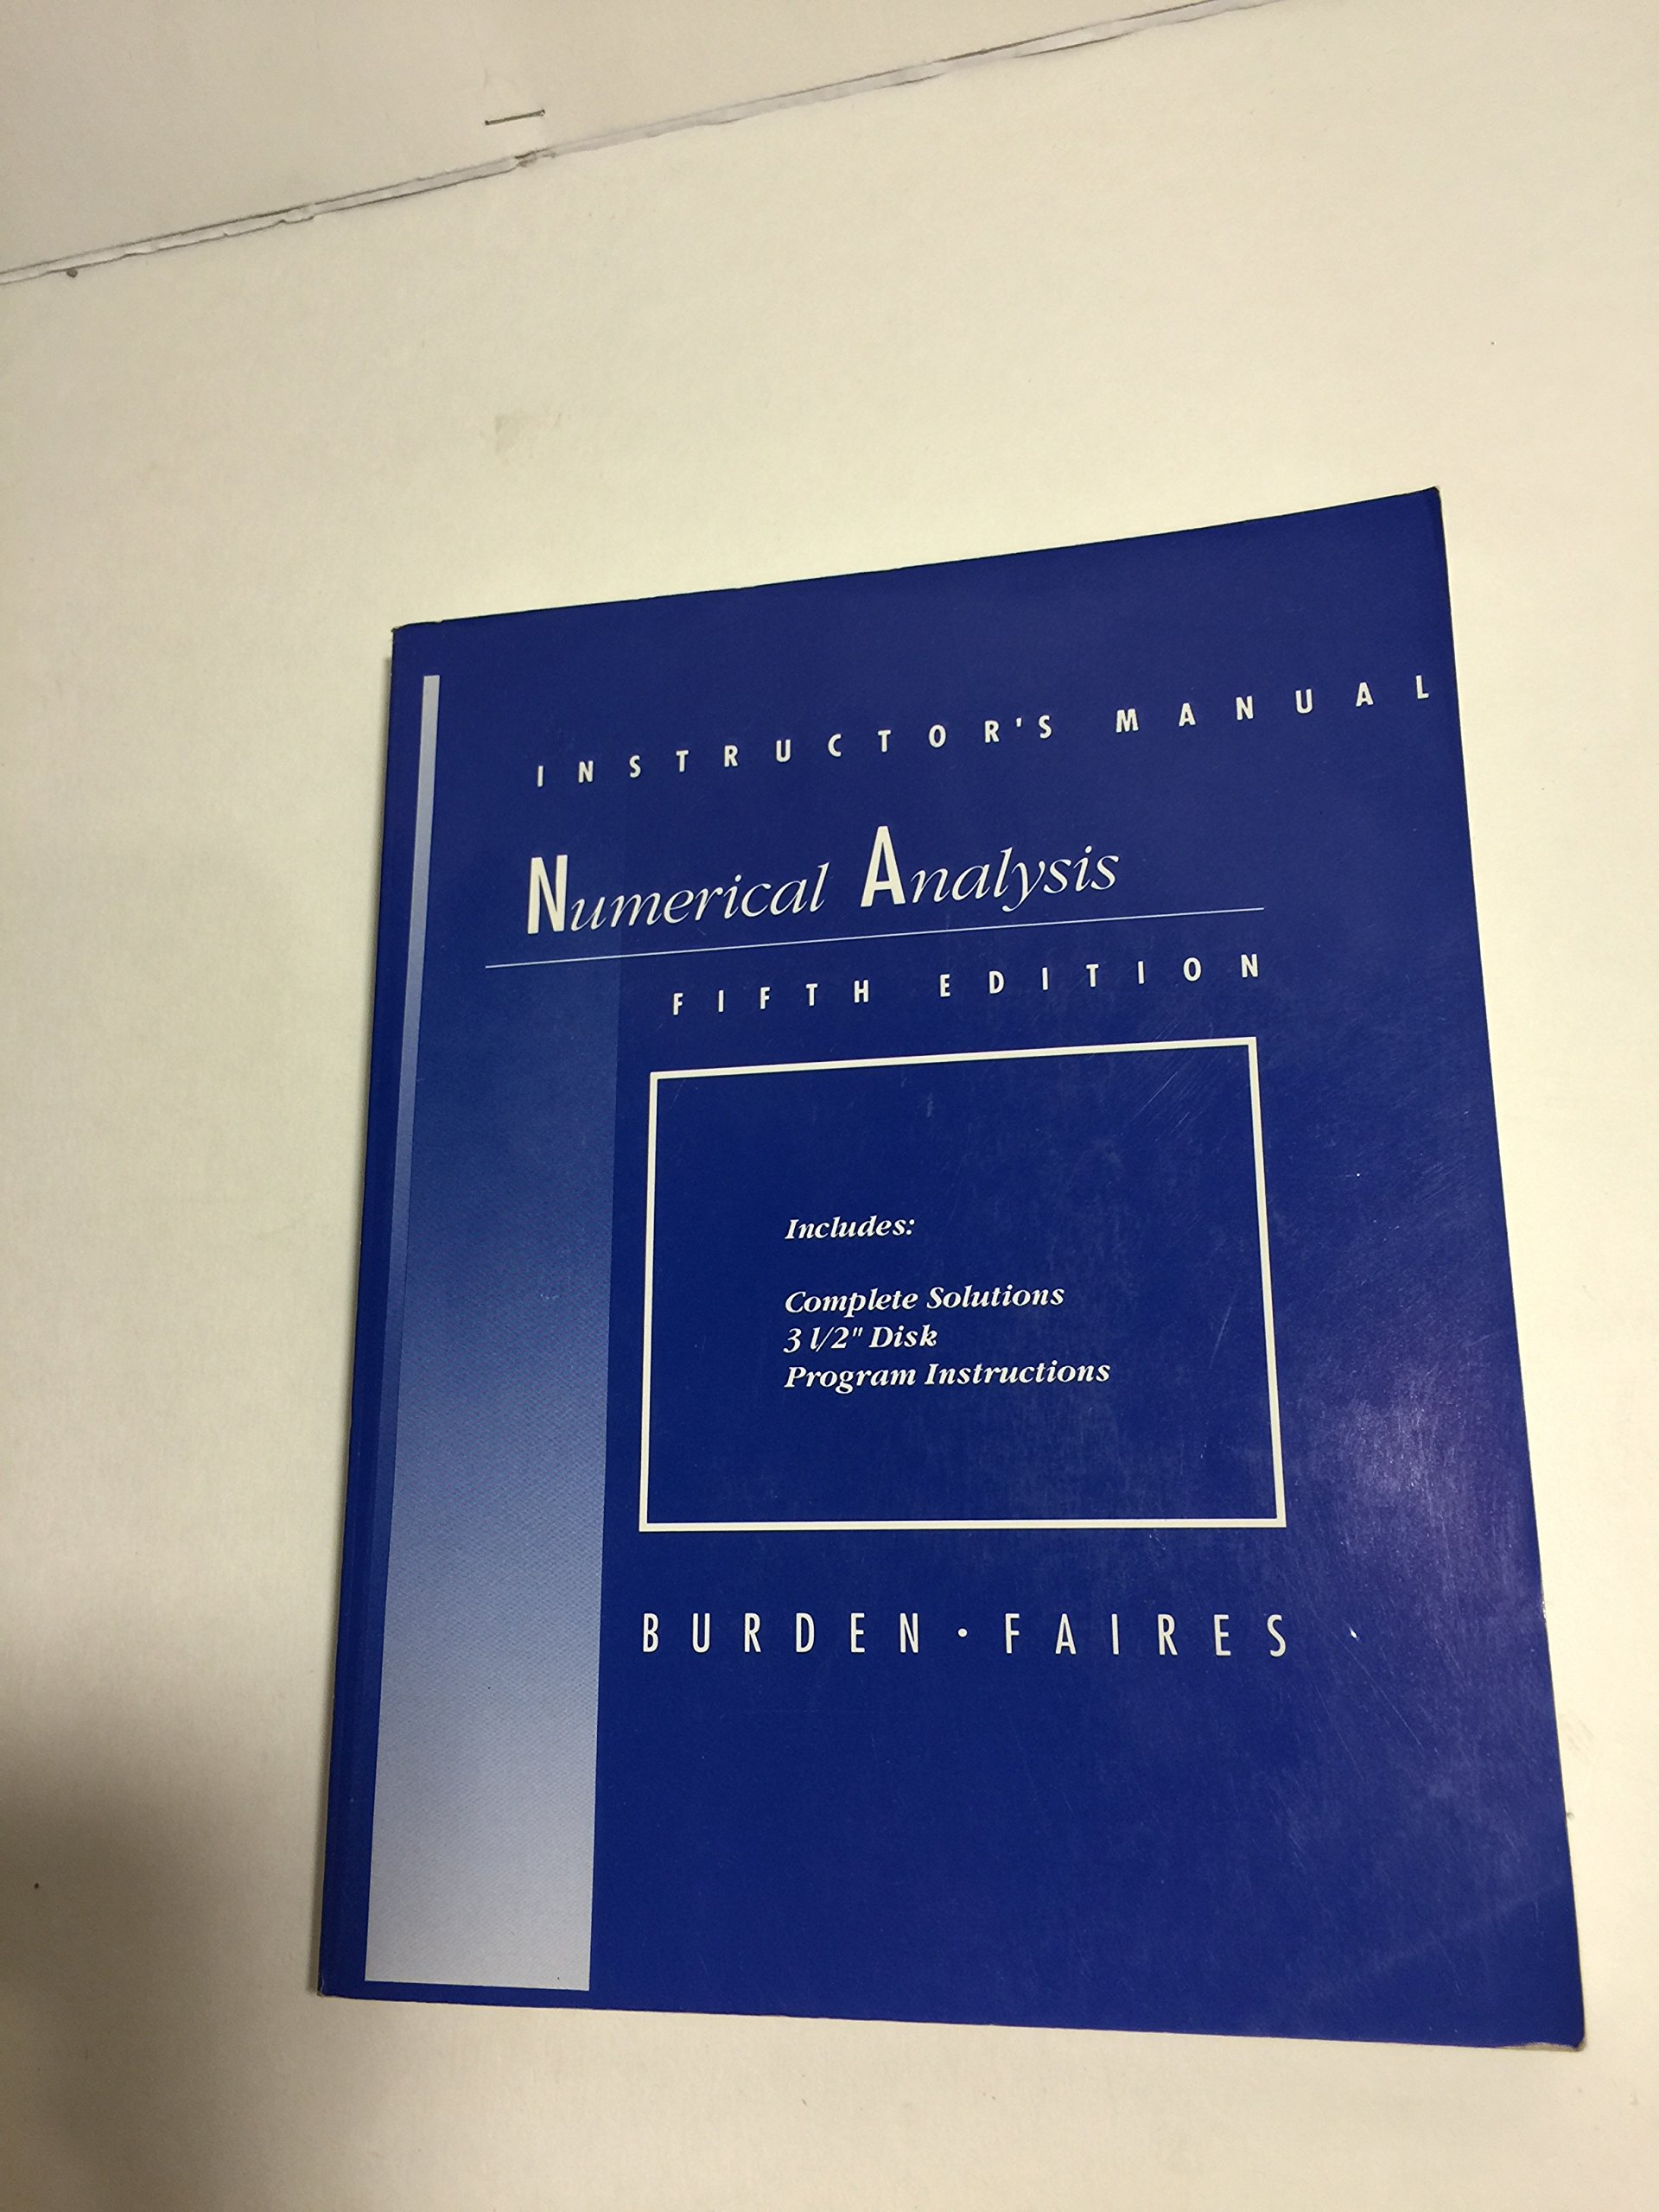 Numerical Analysis Instructors Manual Fifth Edition Disk: Richard L. Burden  And J. Douglas Faires: 0785035081292: Amazon.com: Books